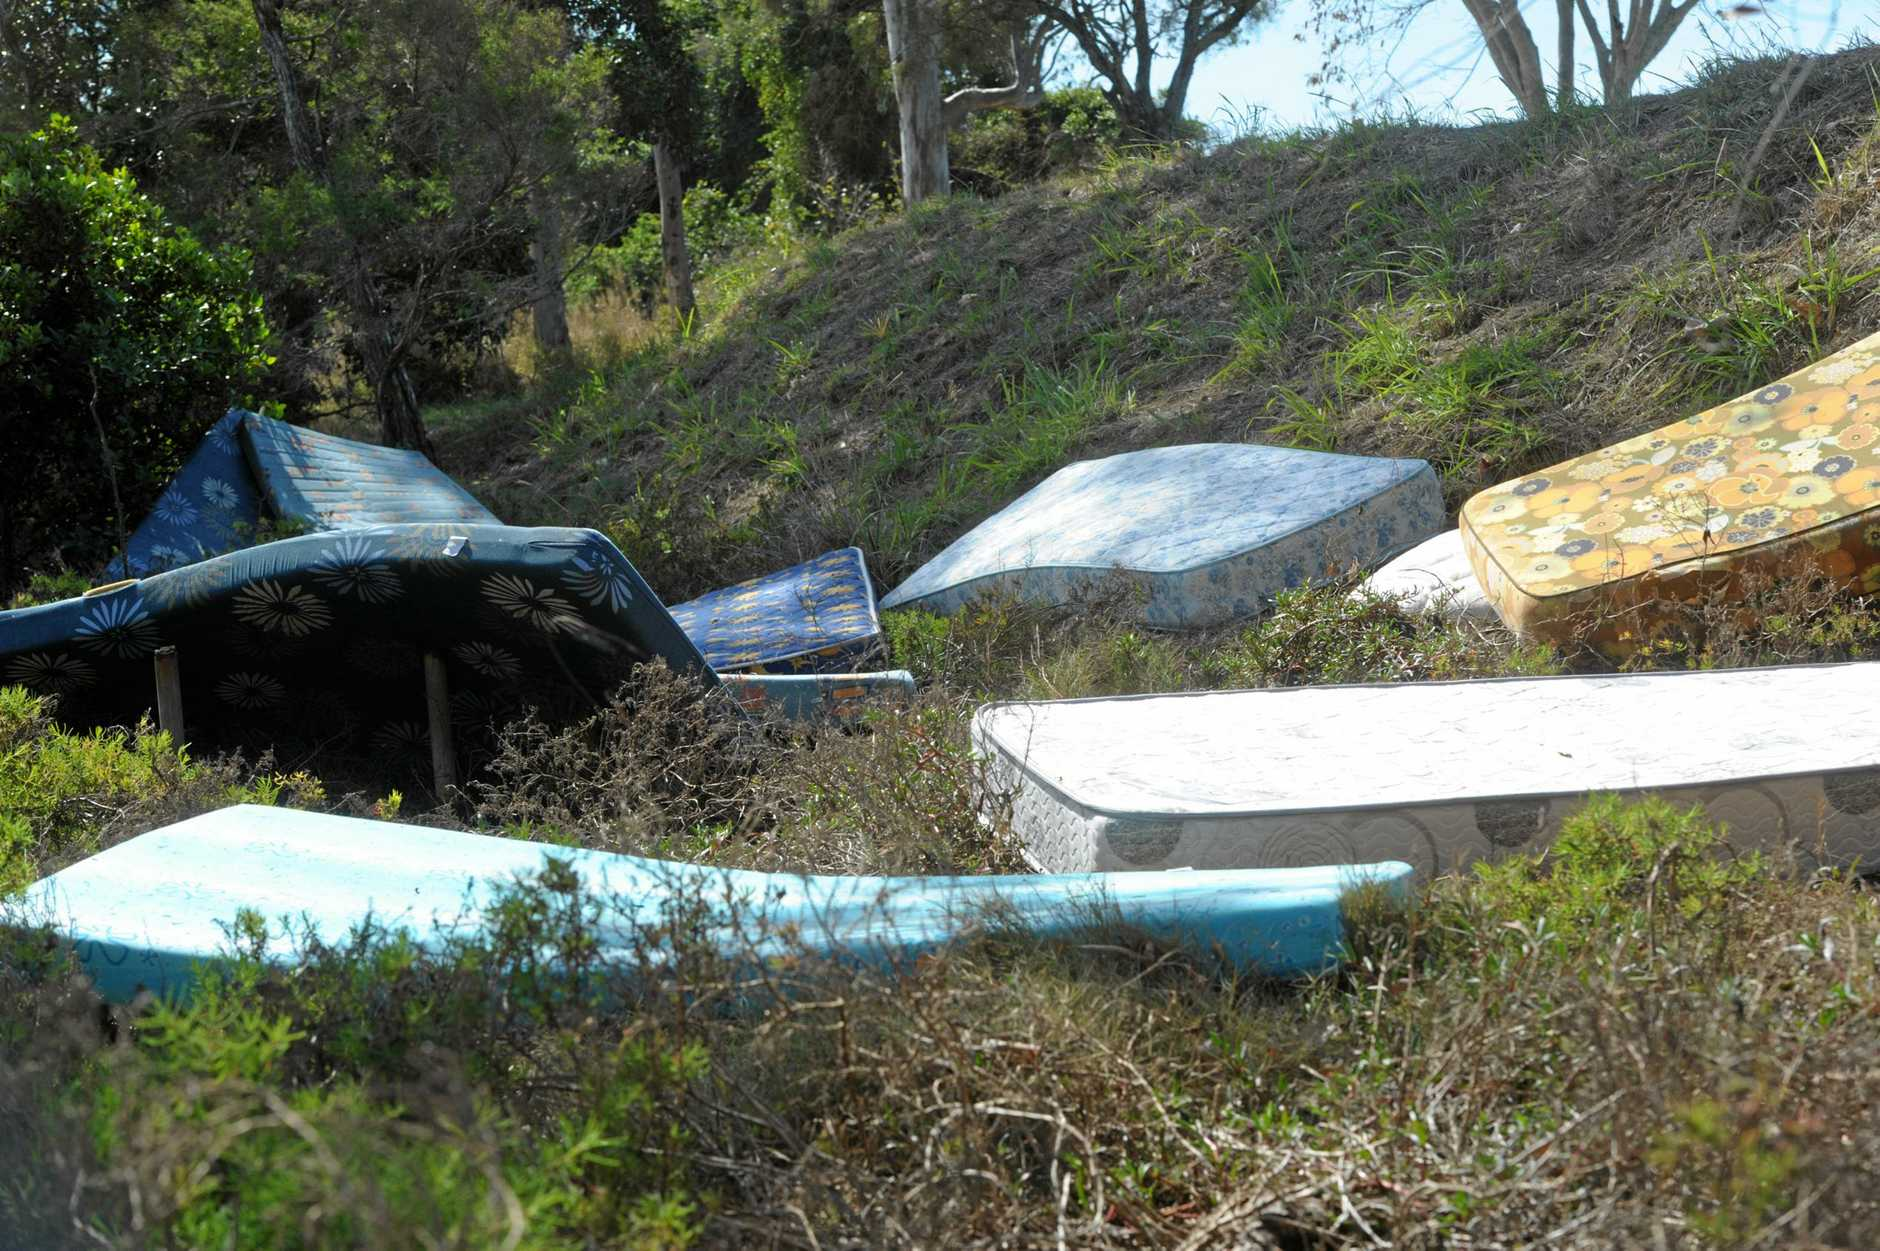 DUMPED: More than a dozen mattresses have been spotted littering the embankment between the Burnett River and McGills Road. There was also tyres and rubbish sighted along that stretch.